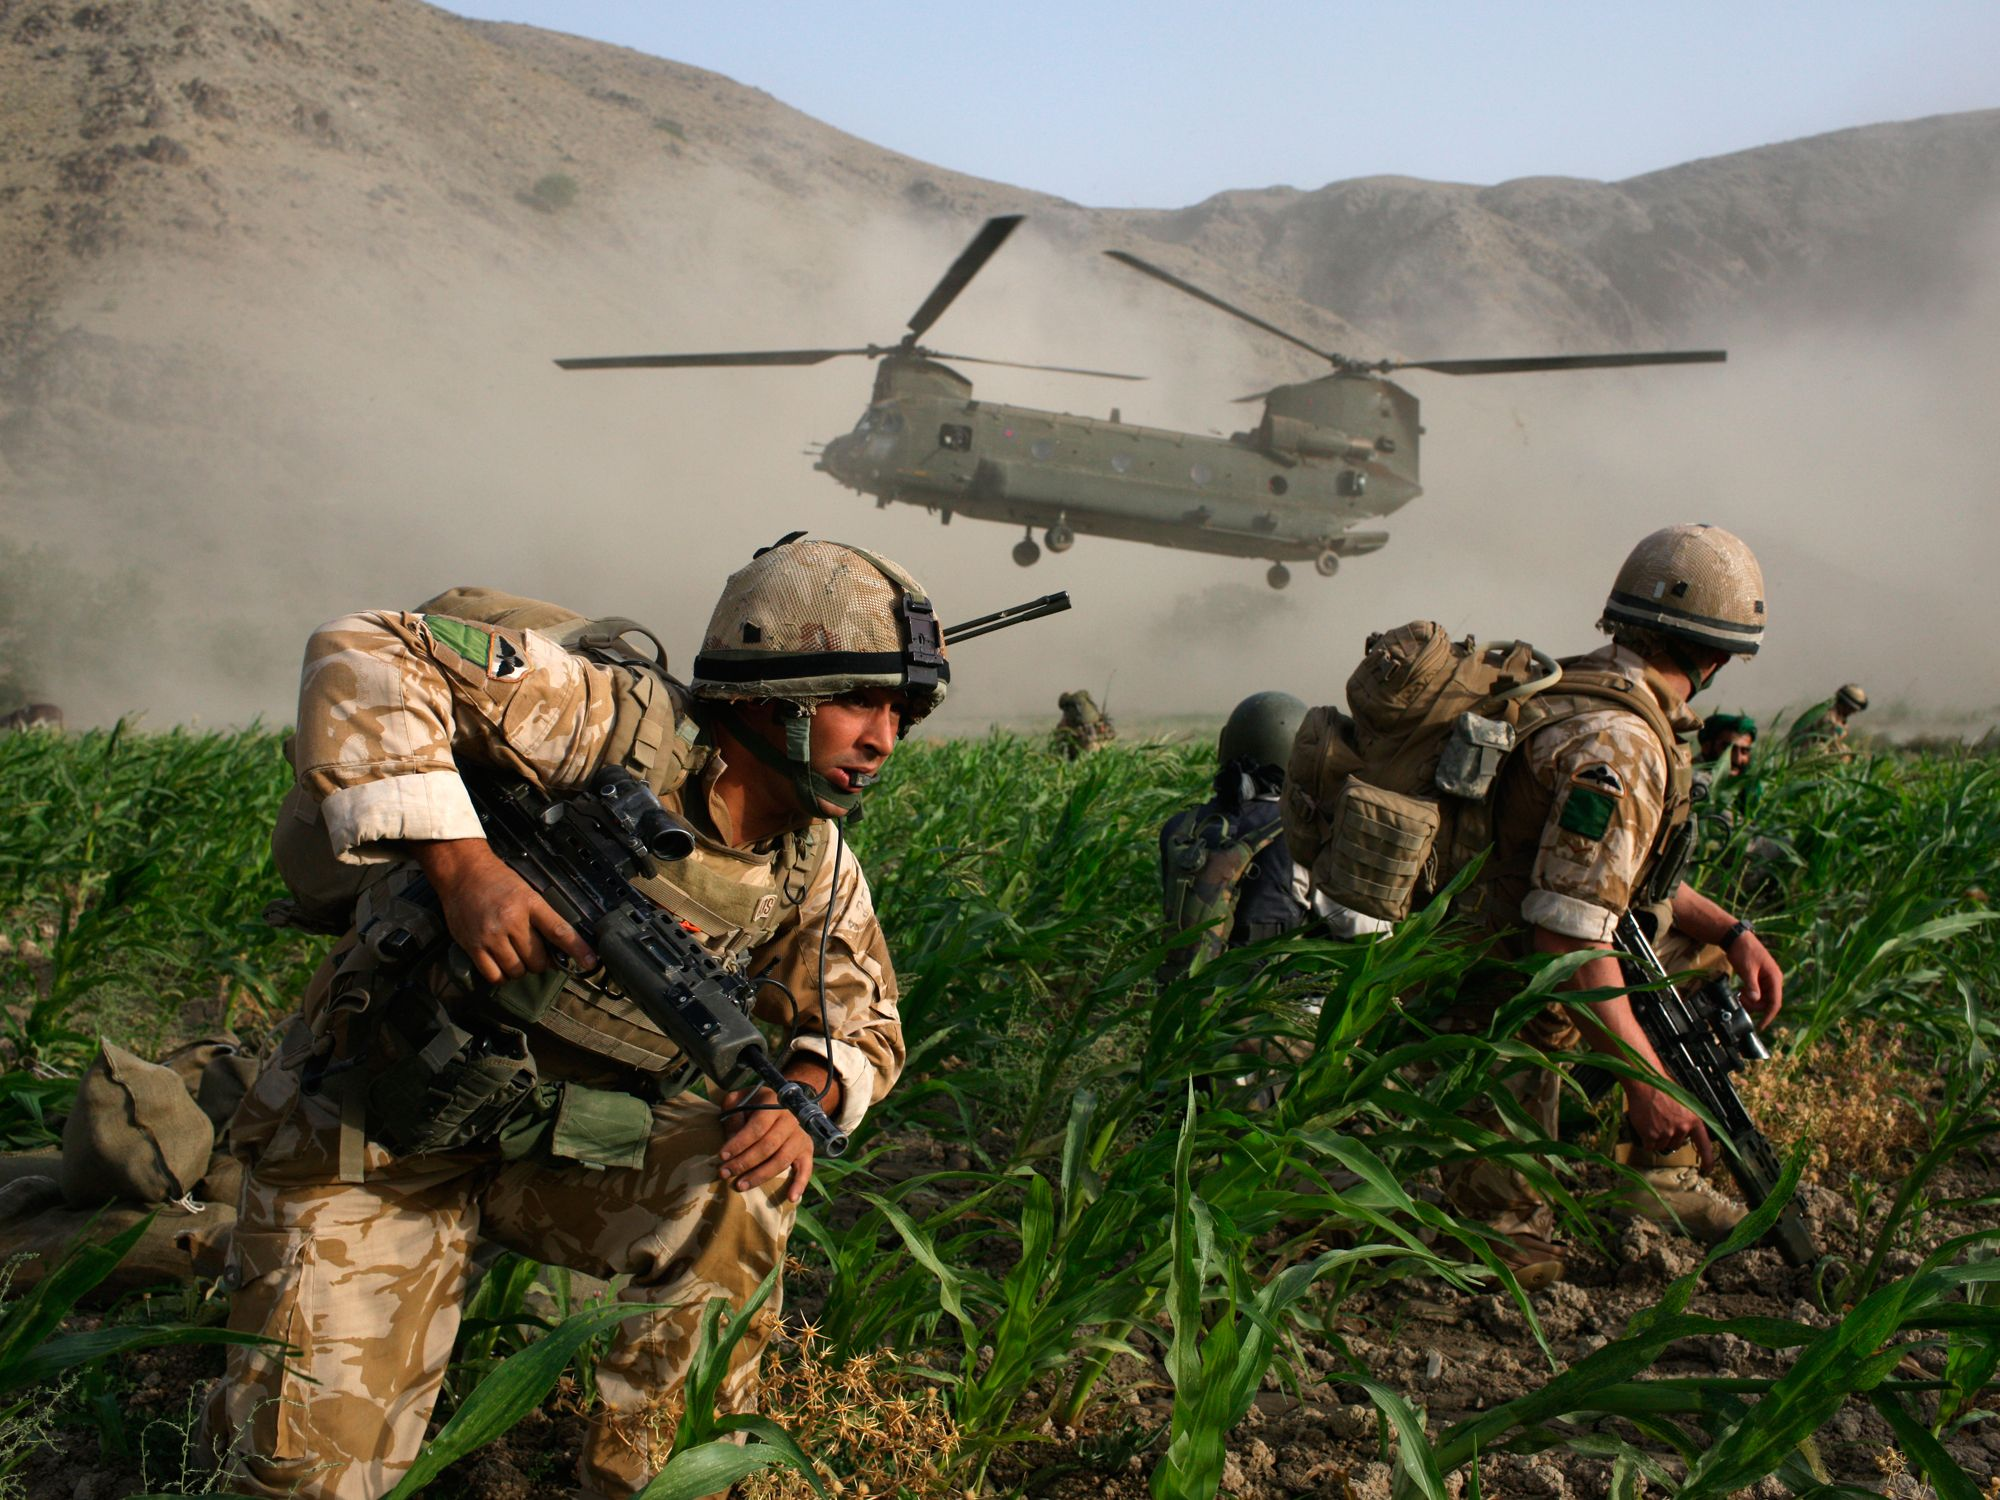 Afghanistan: The Soldiers' Story (And It's Not The One You Hear On The News)